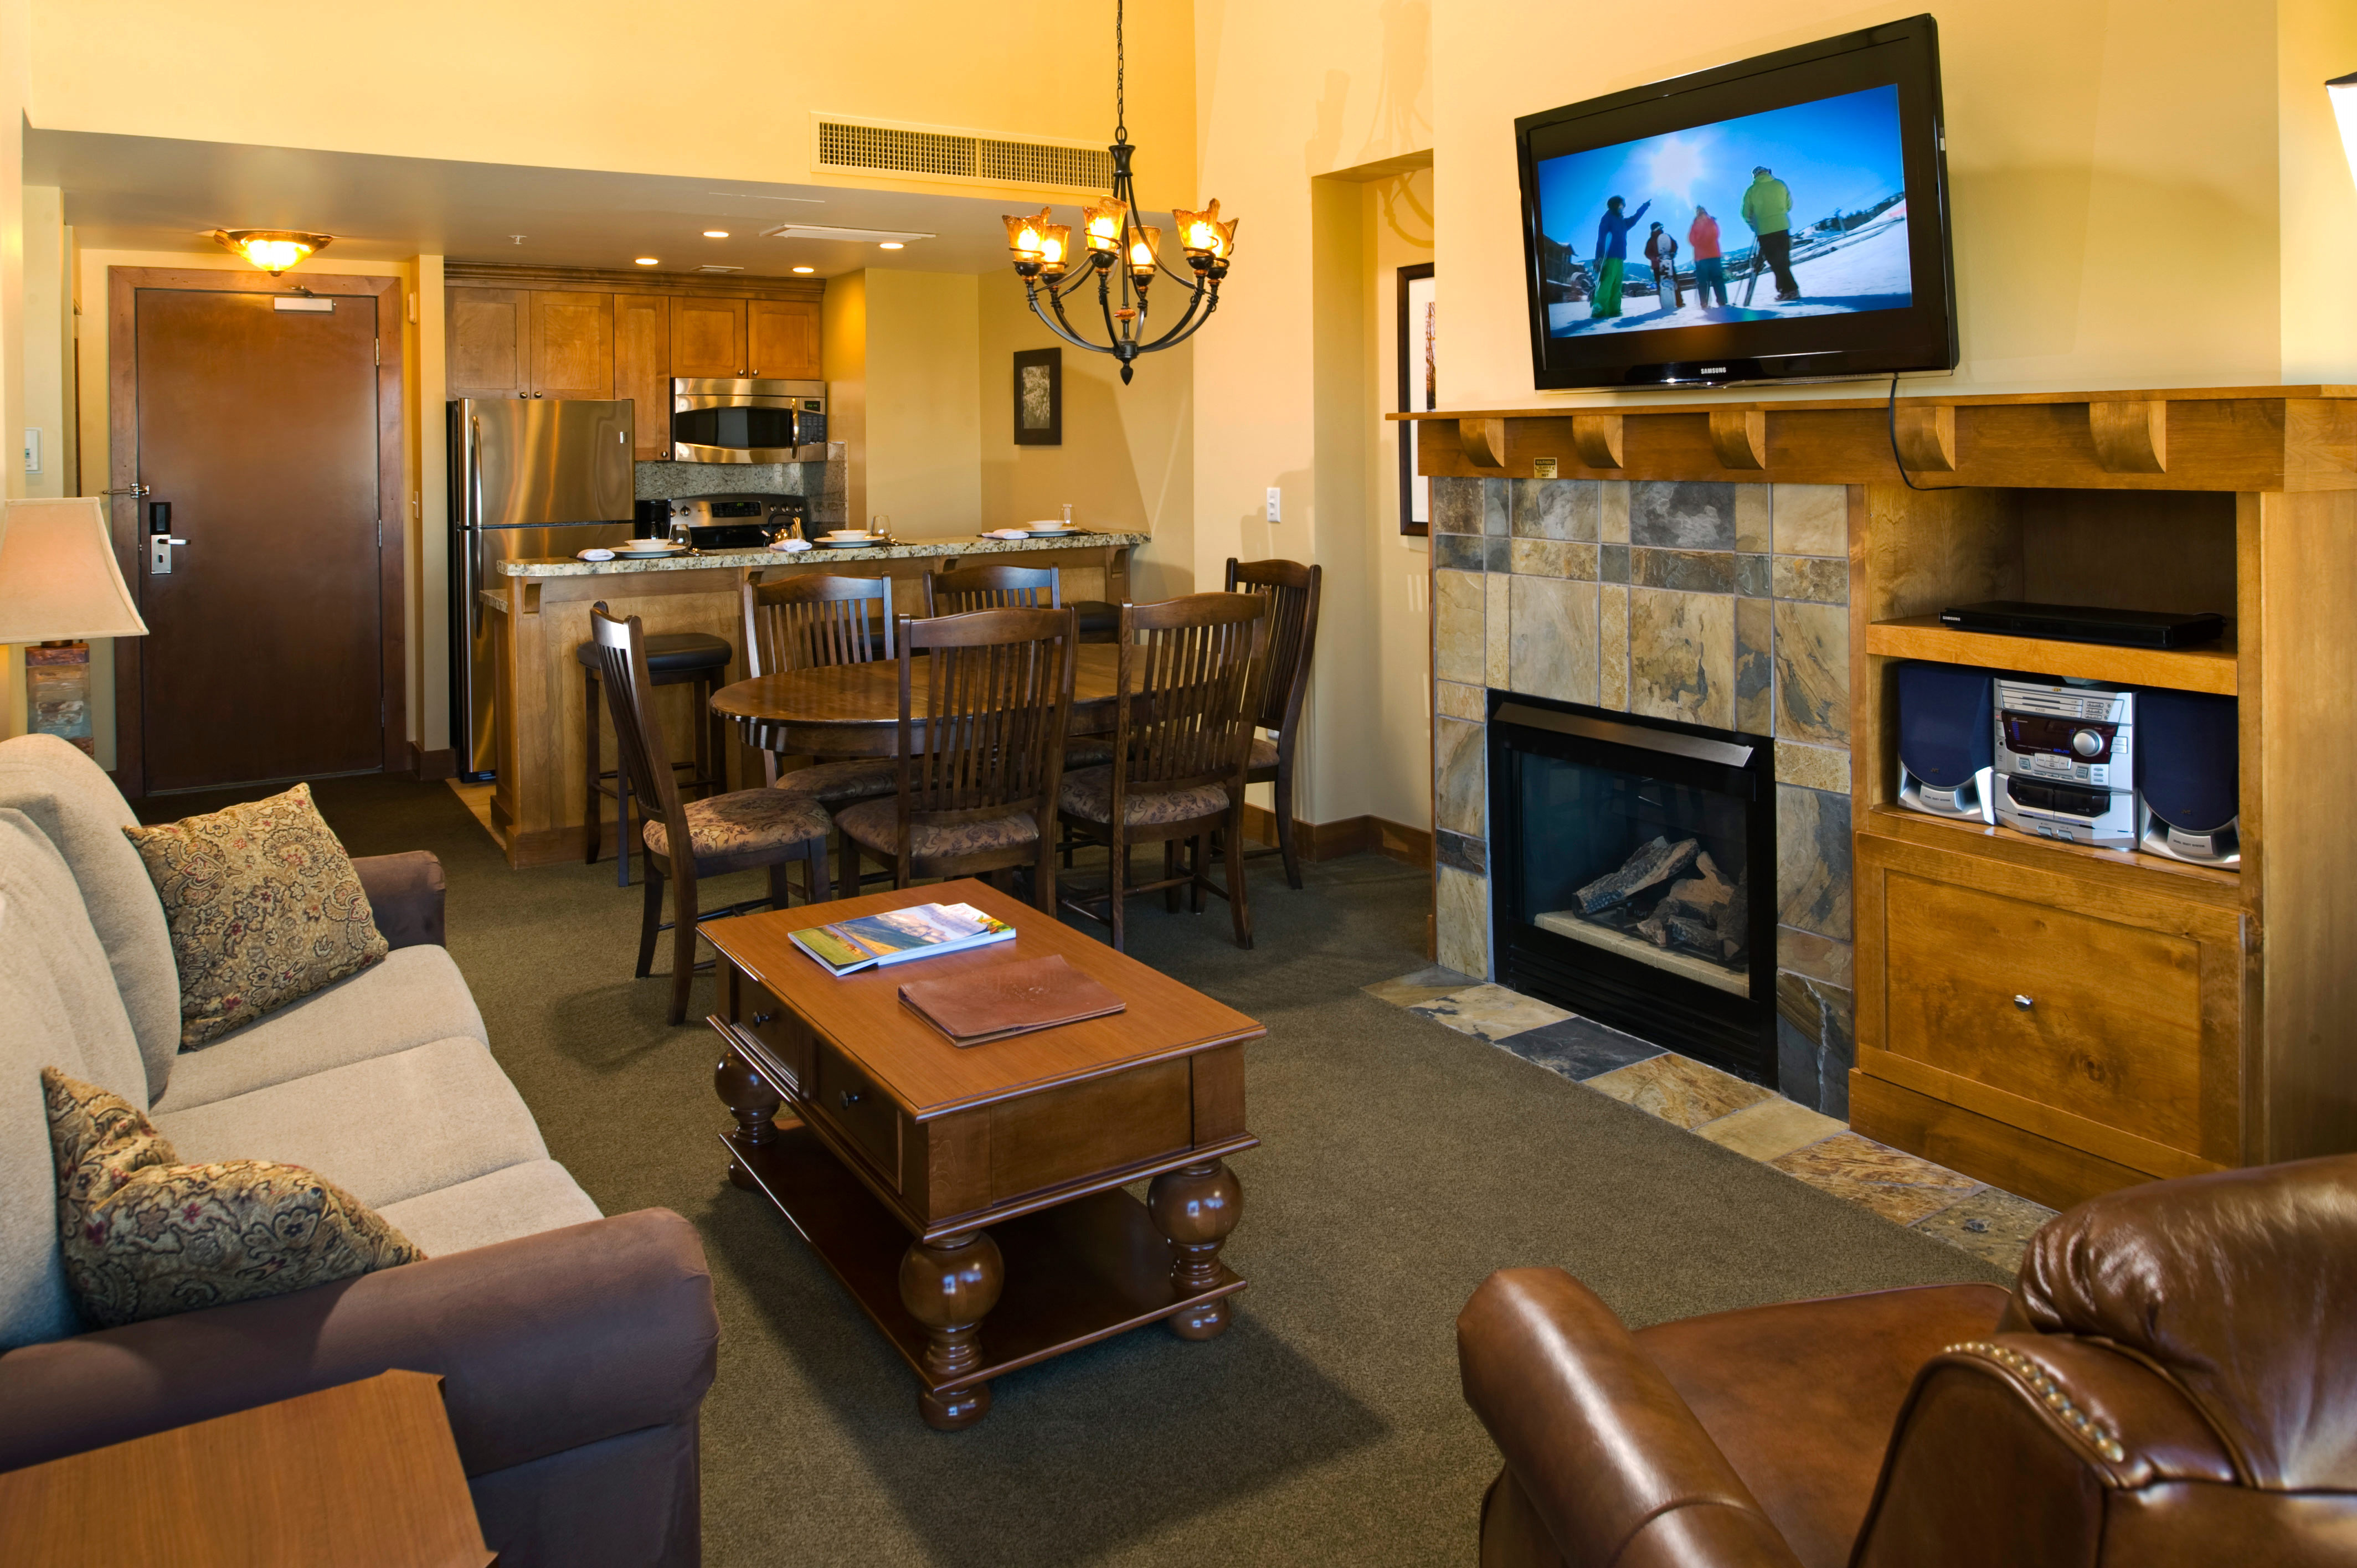 Country Family Lodge Resort Rustic Suite sofa television property living room recreation room home condominium Lobby flat